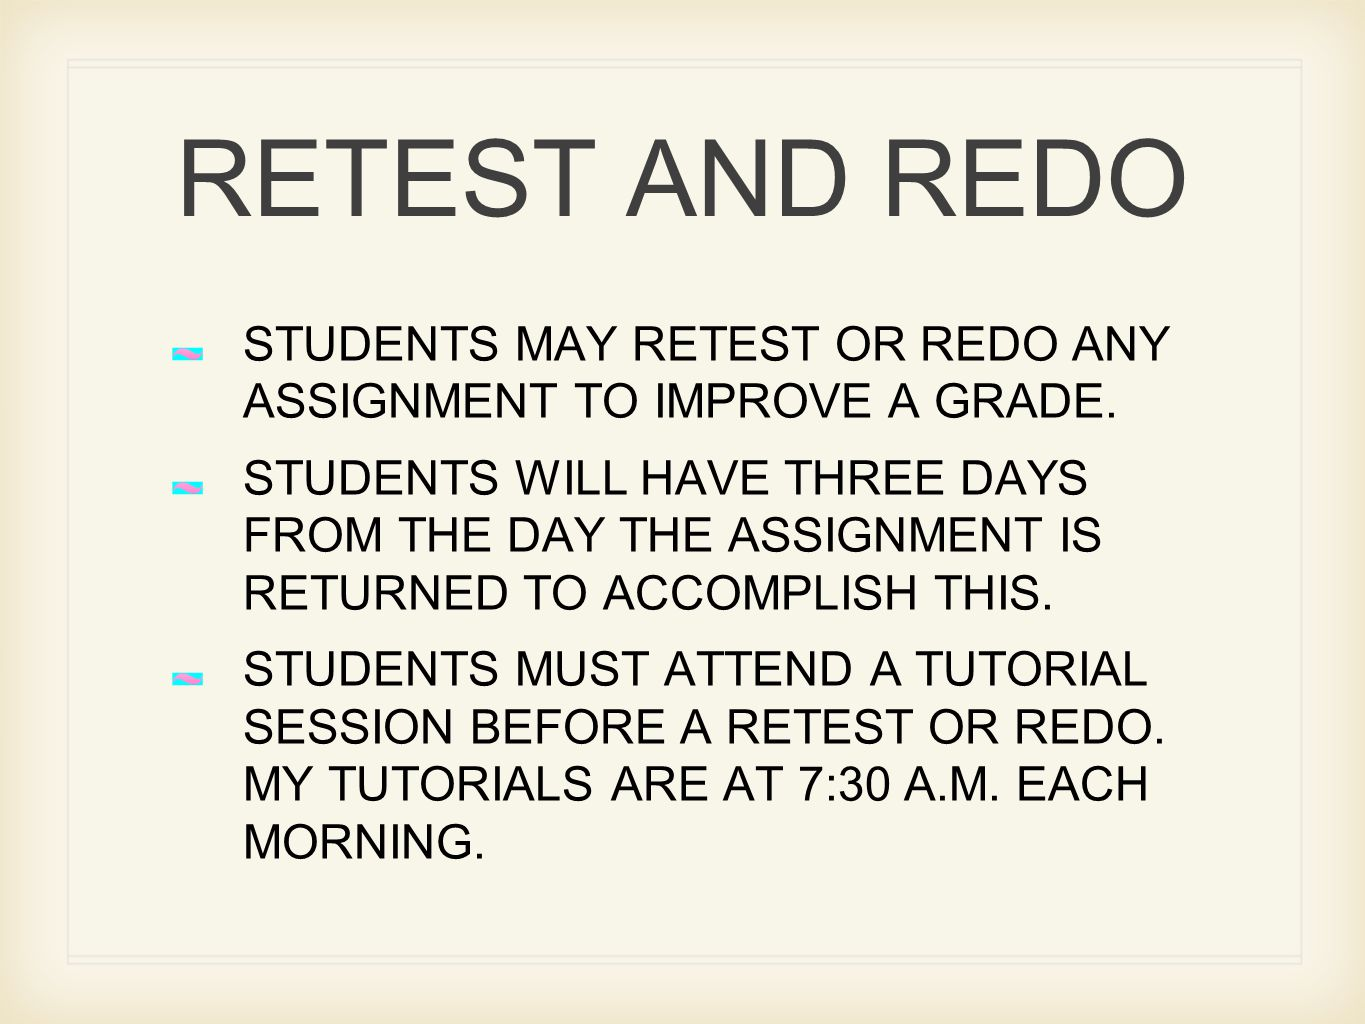 RETEST AND REDO STUDENTS MAY RETEST OR REDO ANY ASSIGNMENT TO IMPROVE A GRADE. STUDENTS WILL HAVE THREE DAYS FROM THE DAY THE ASSIGNMENT IS RETURNED T